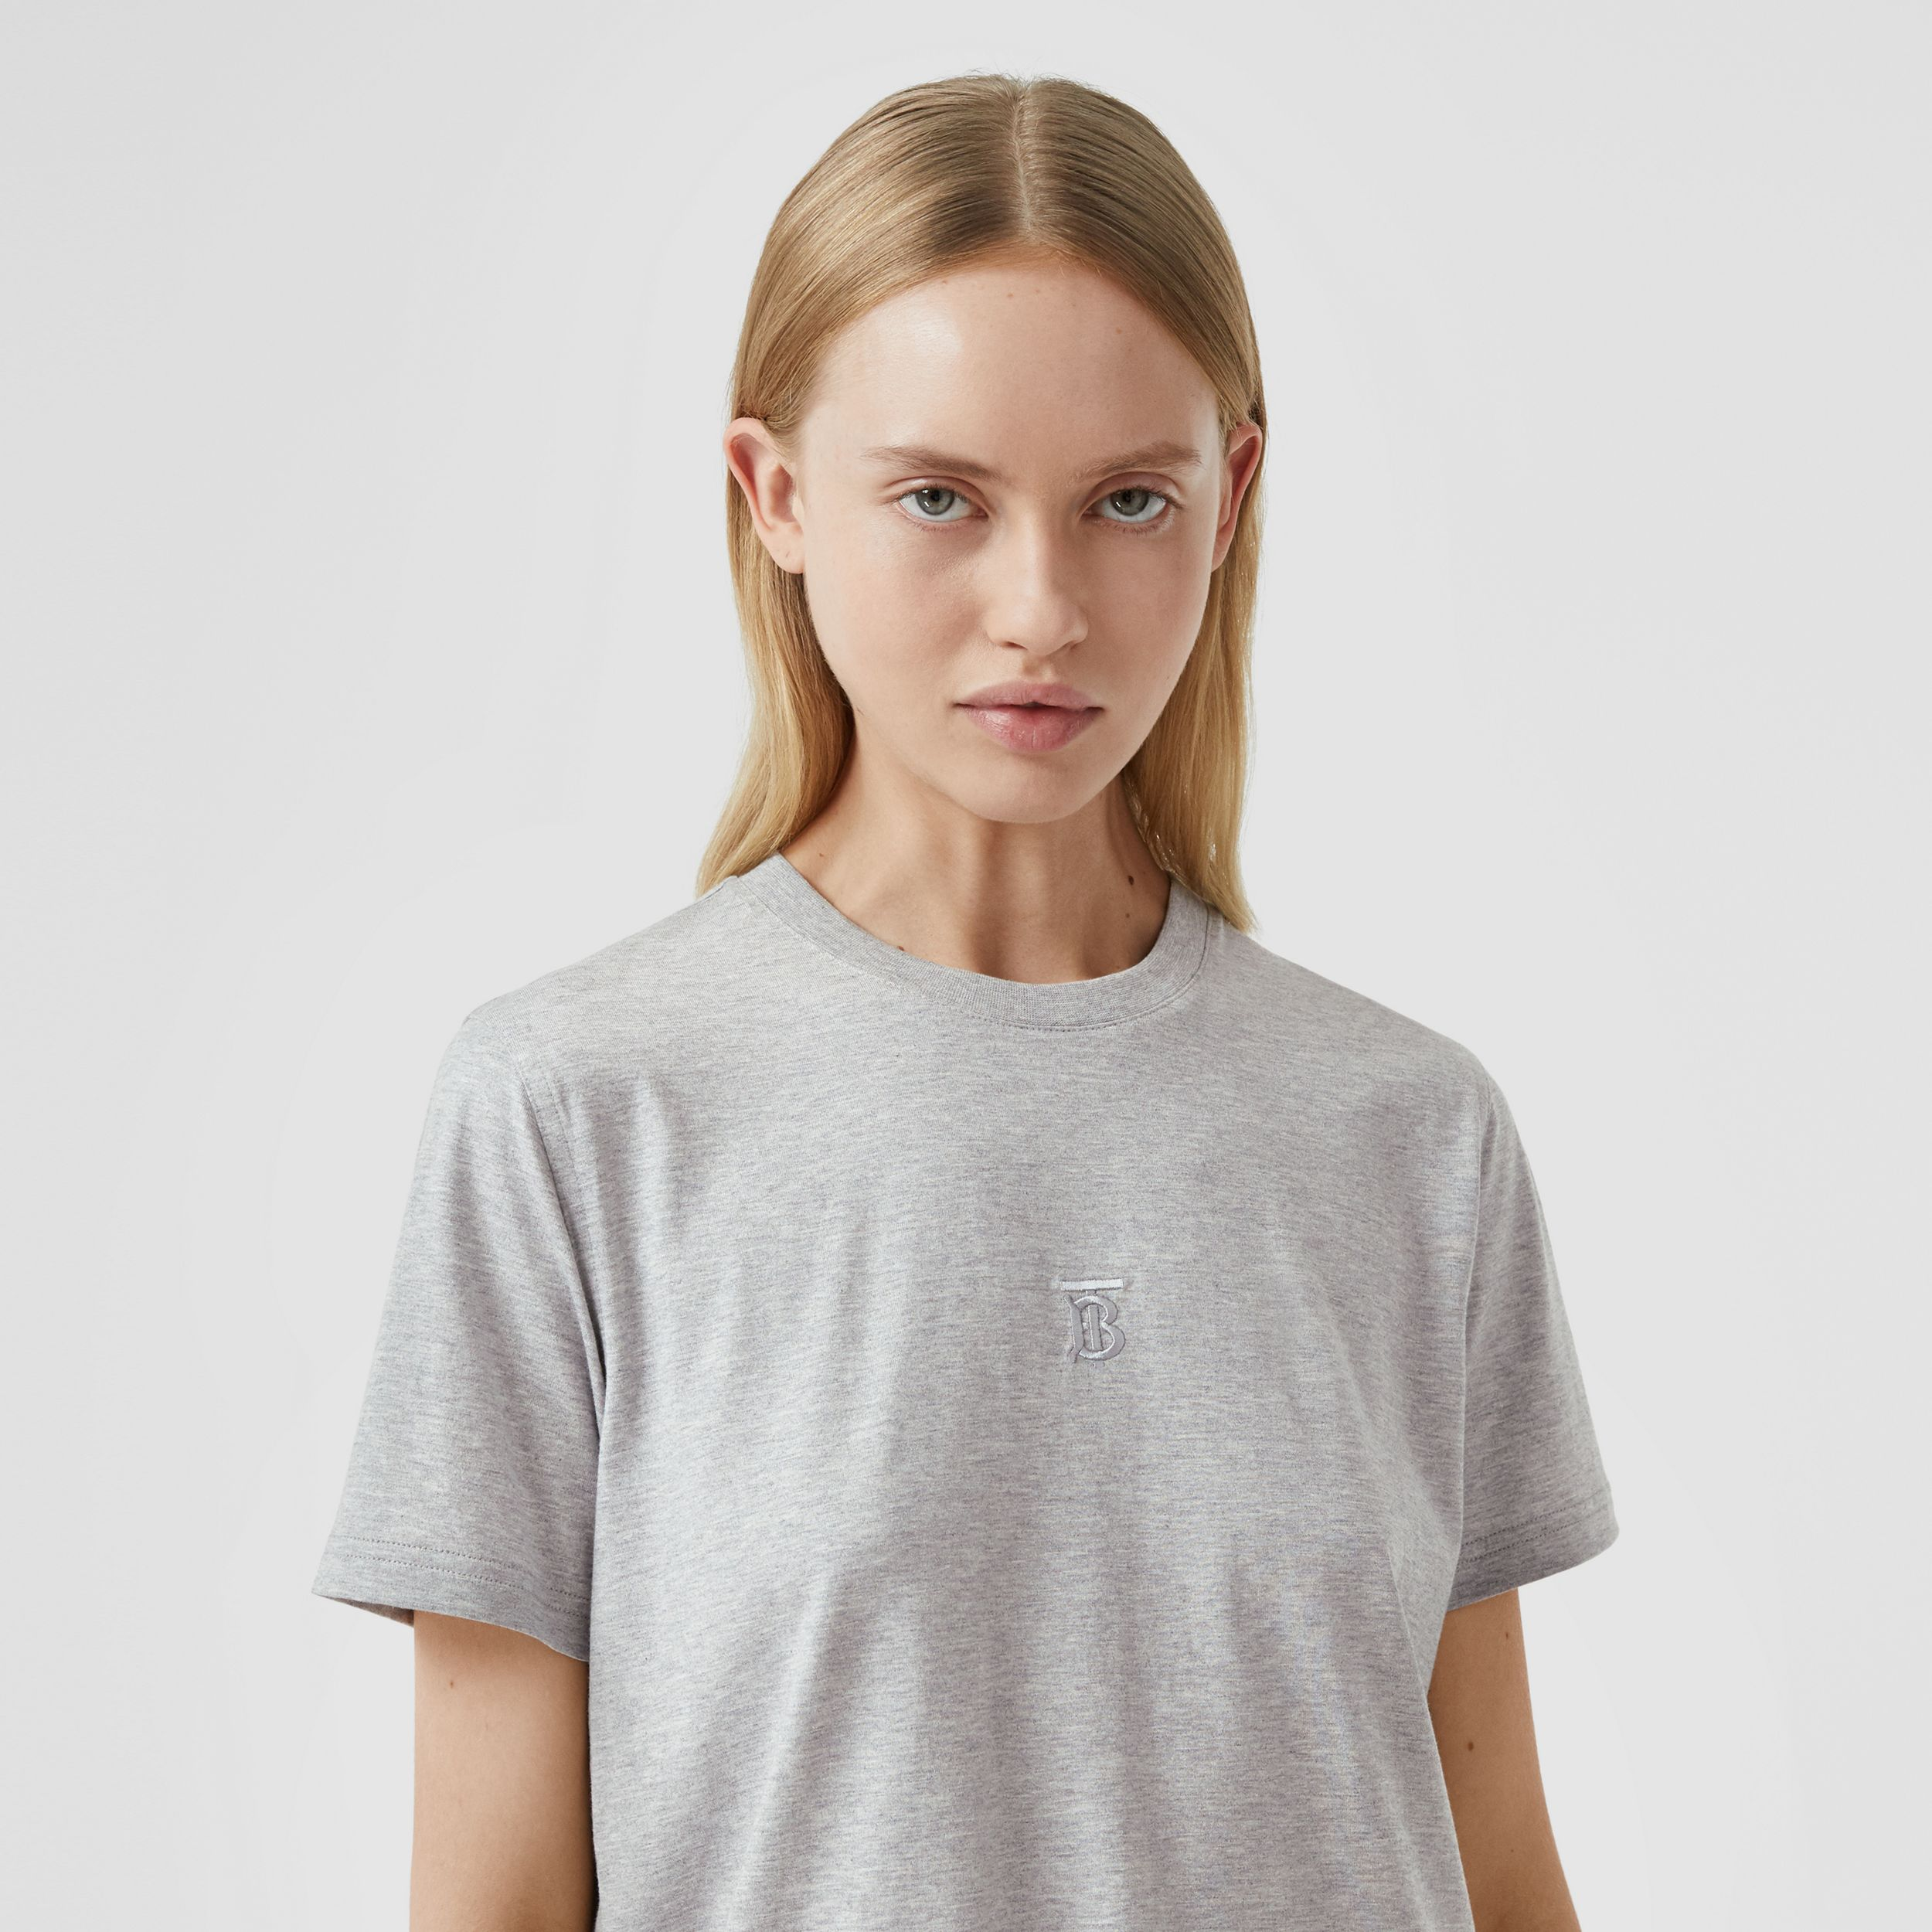 Monogram Motif Cotton T-shirt in Pale Grey Melange - Women | Burberry - 2